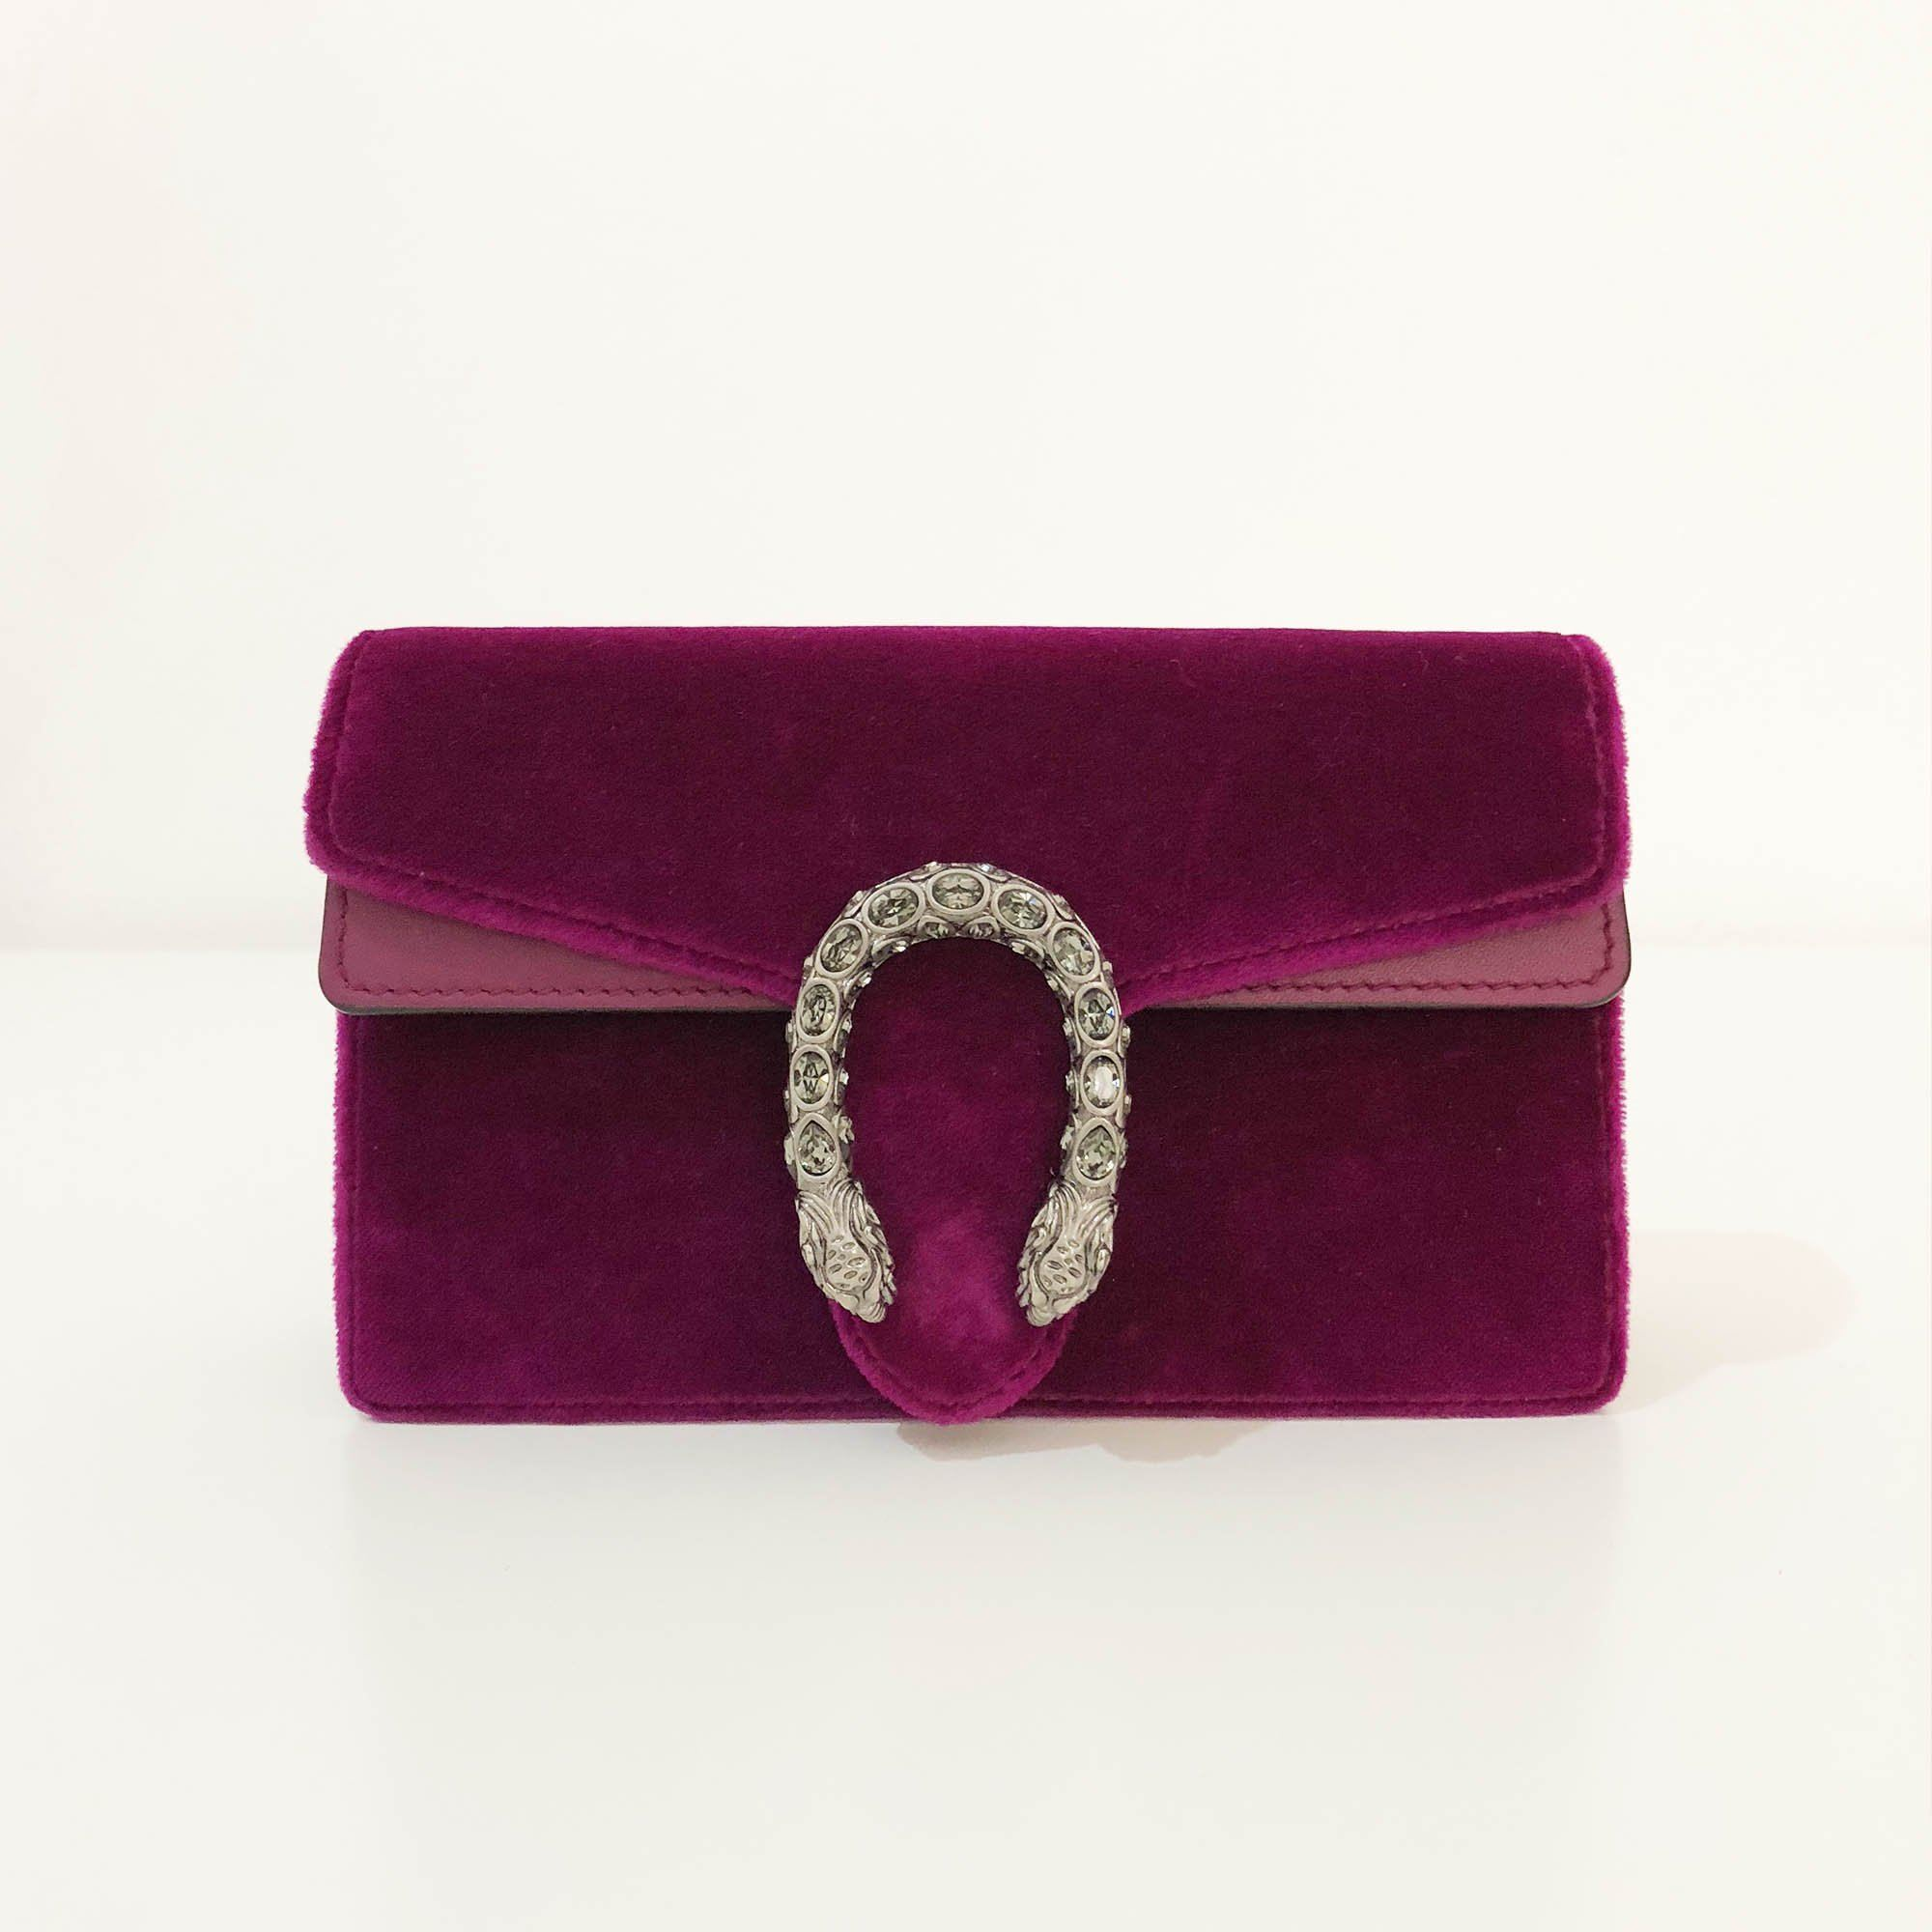 Gucci Dionysus Velvet Super Mini Bag